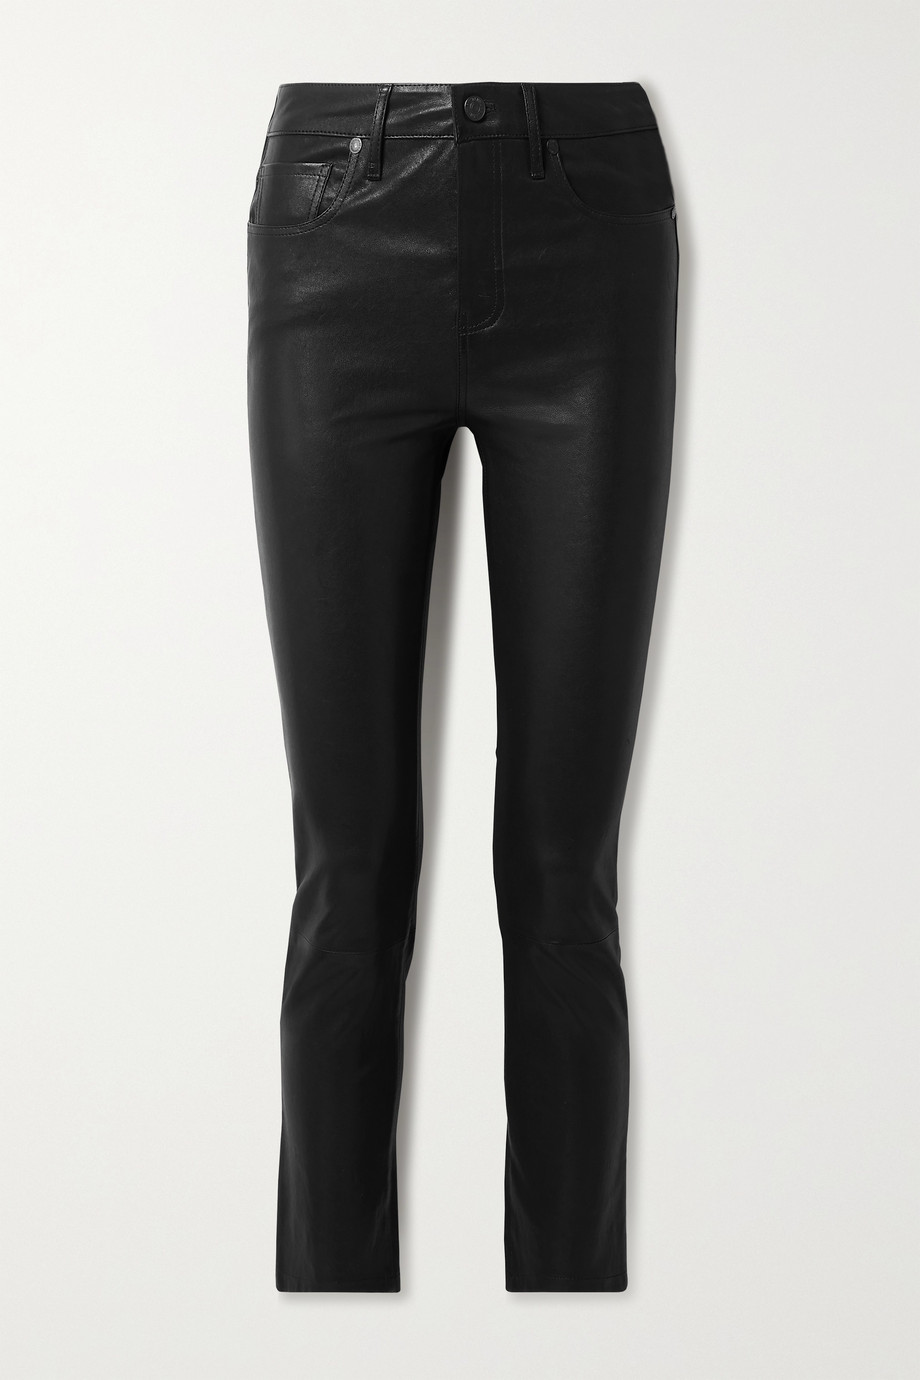 Citizens of Humanity Harlow leather skinny pants